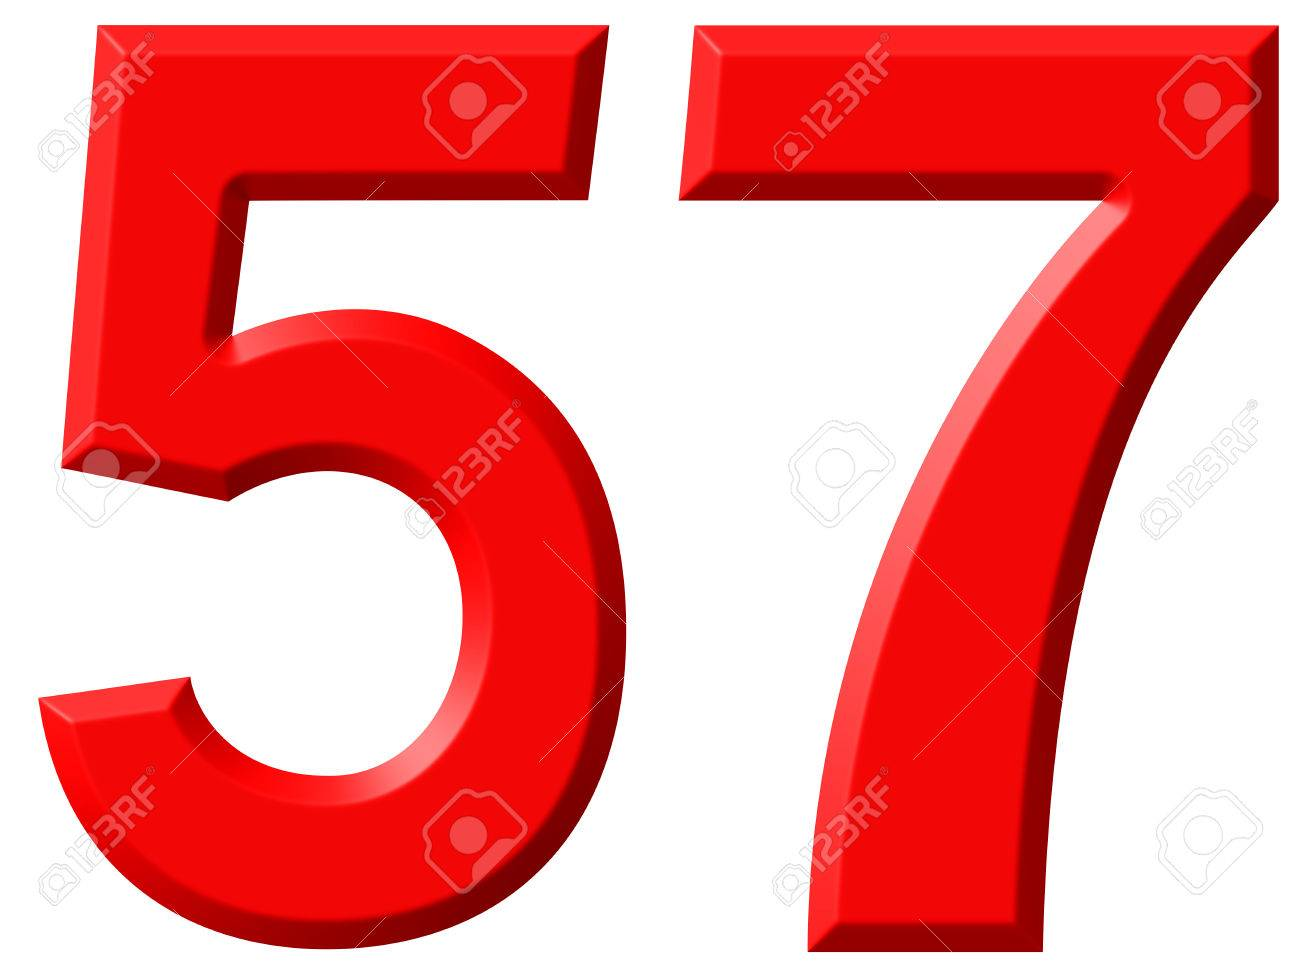 57 >> Numeral 57 Fifty Seven Isolated On White Background 3d Render